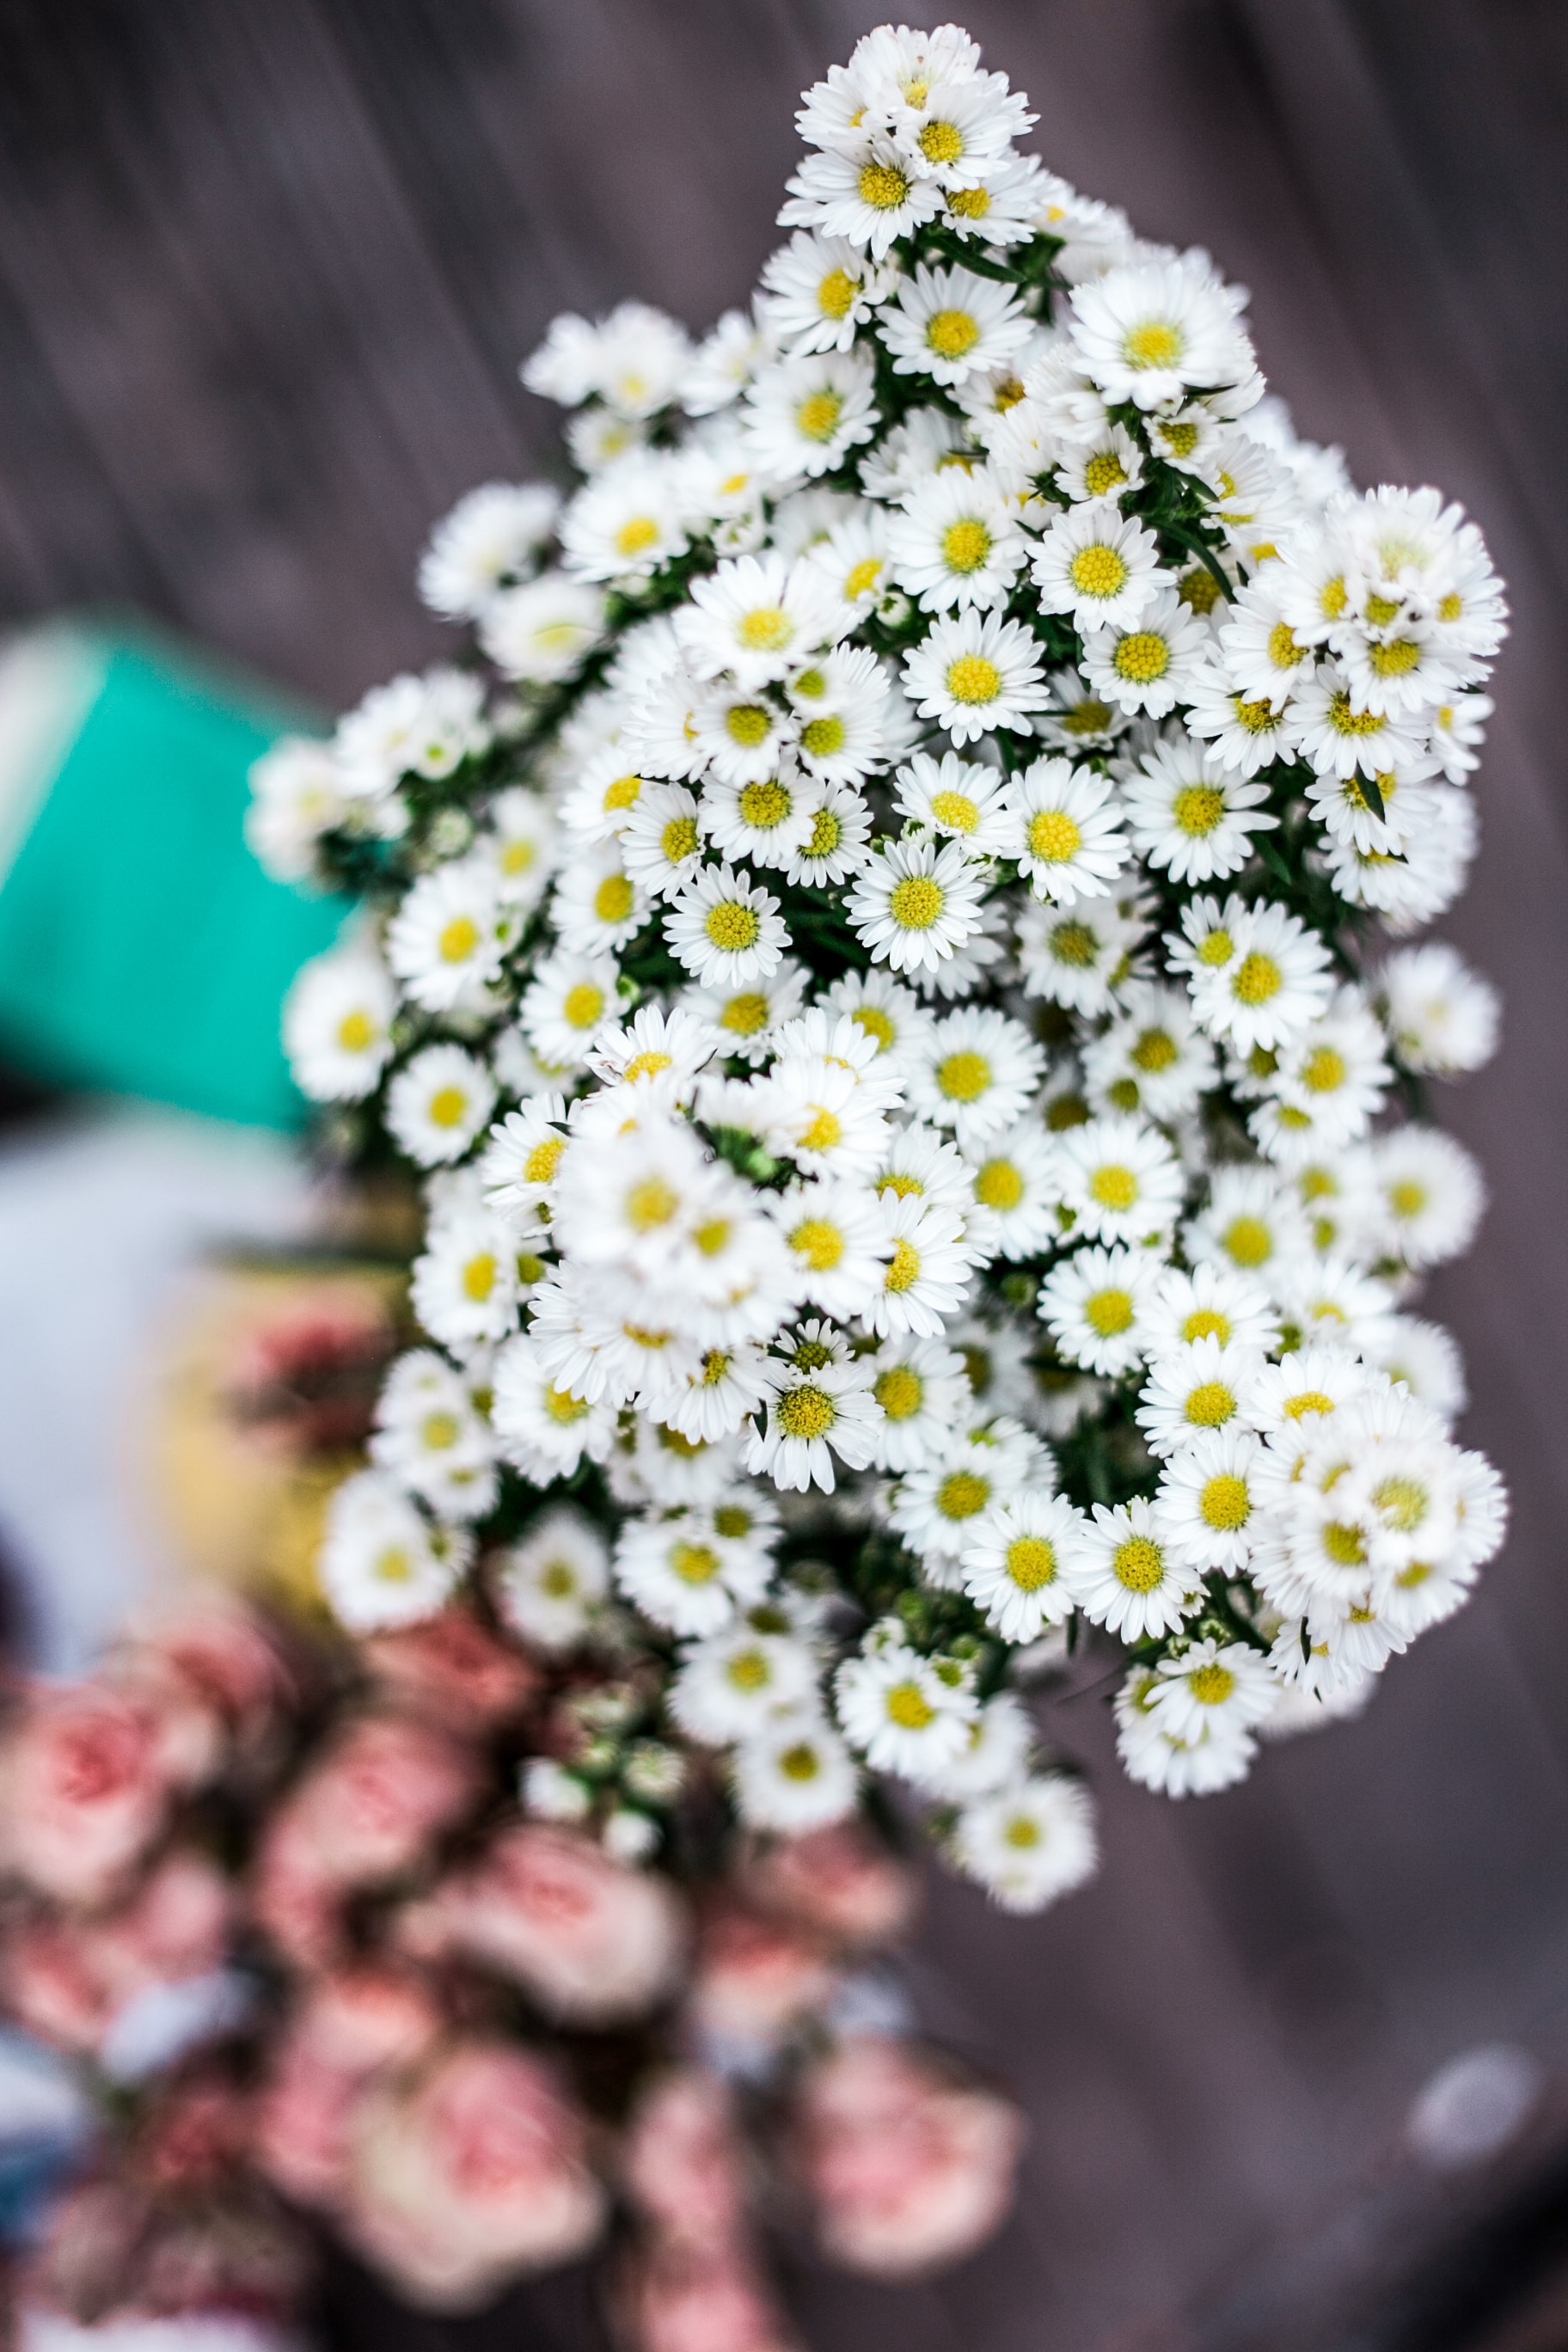 A top view of a bouquet of white daisies with another pink bouquet in the blurred background